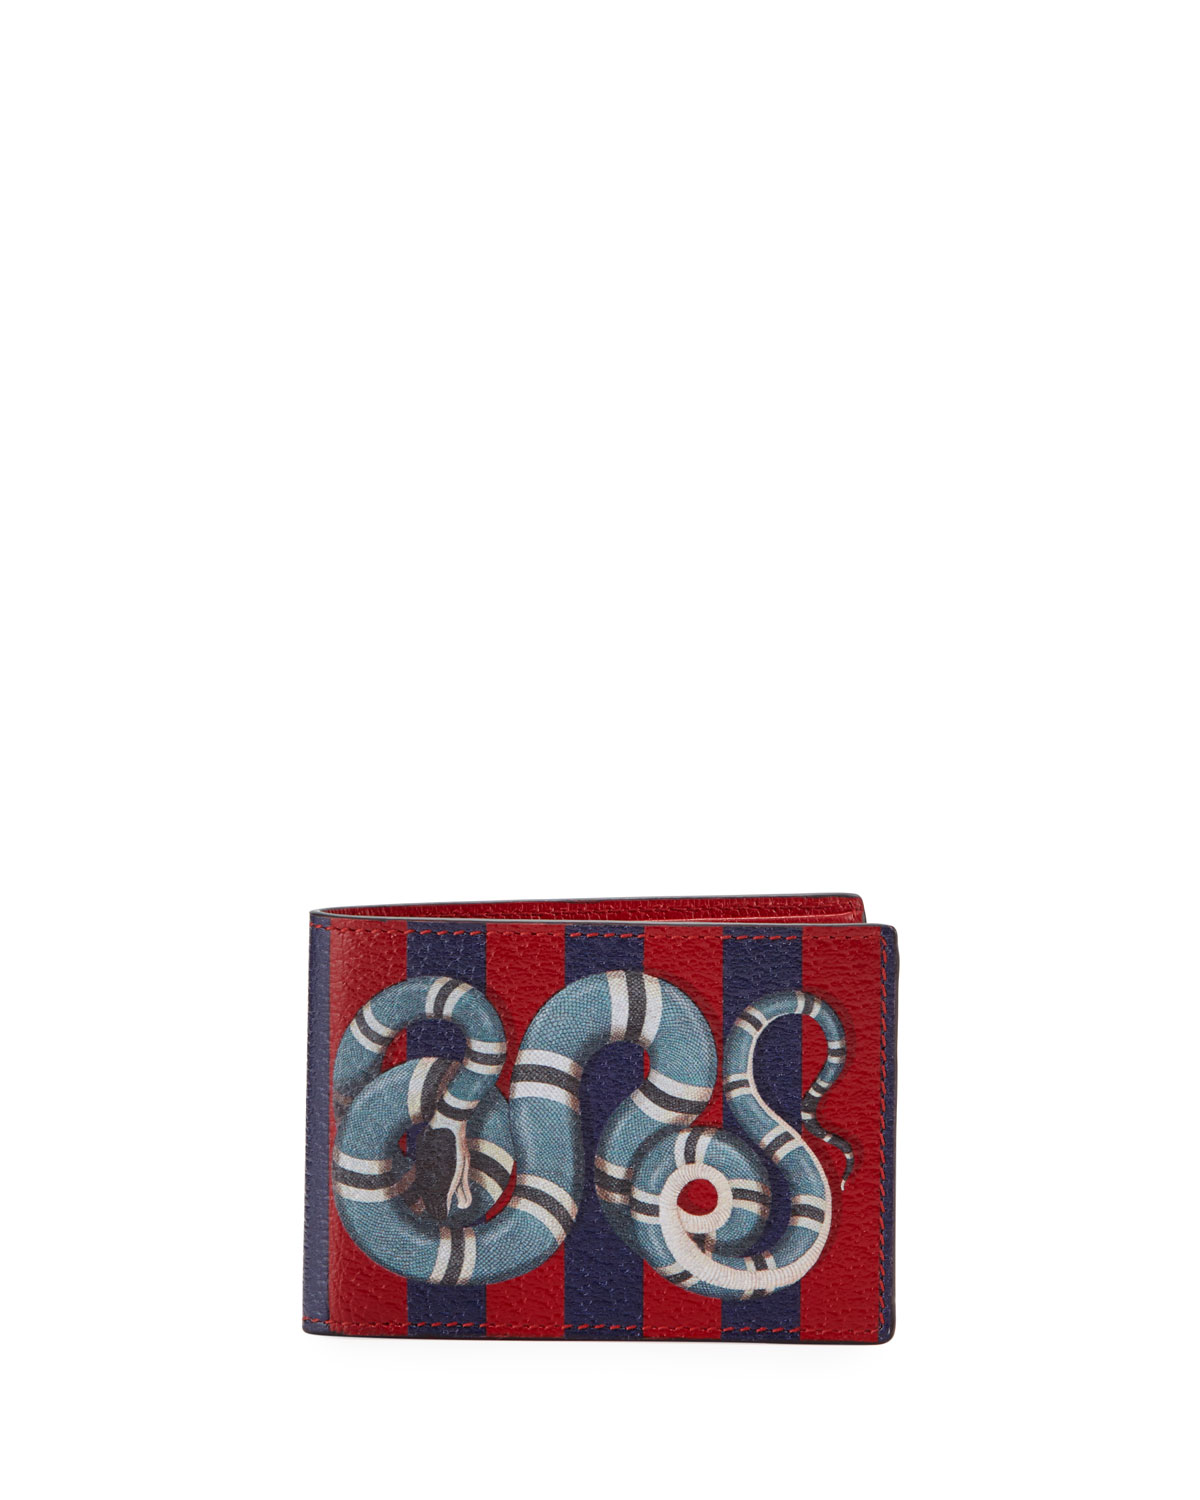 3a88699e0d6 Gucci Snake-Print Striped Leather Wallet